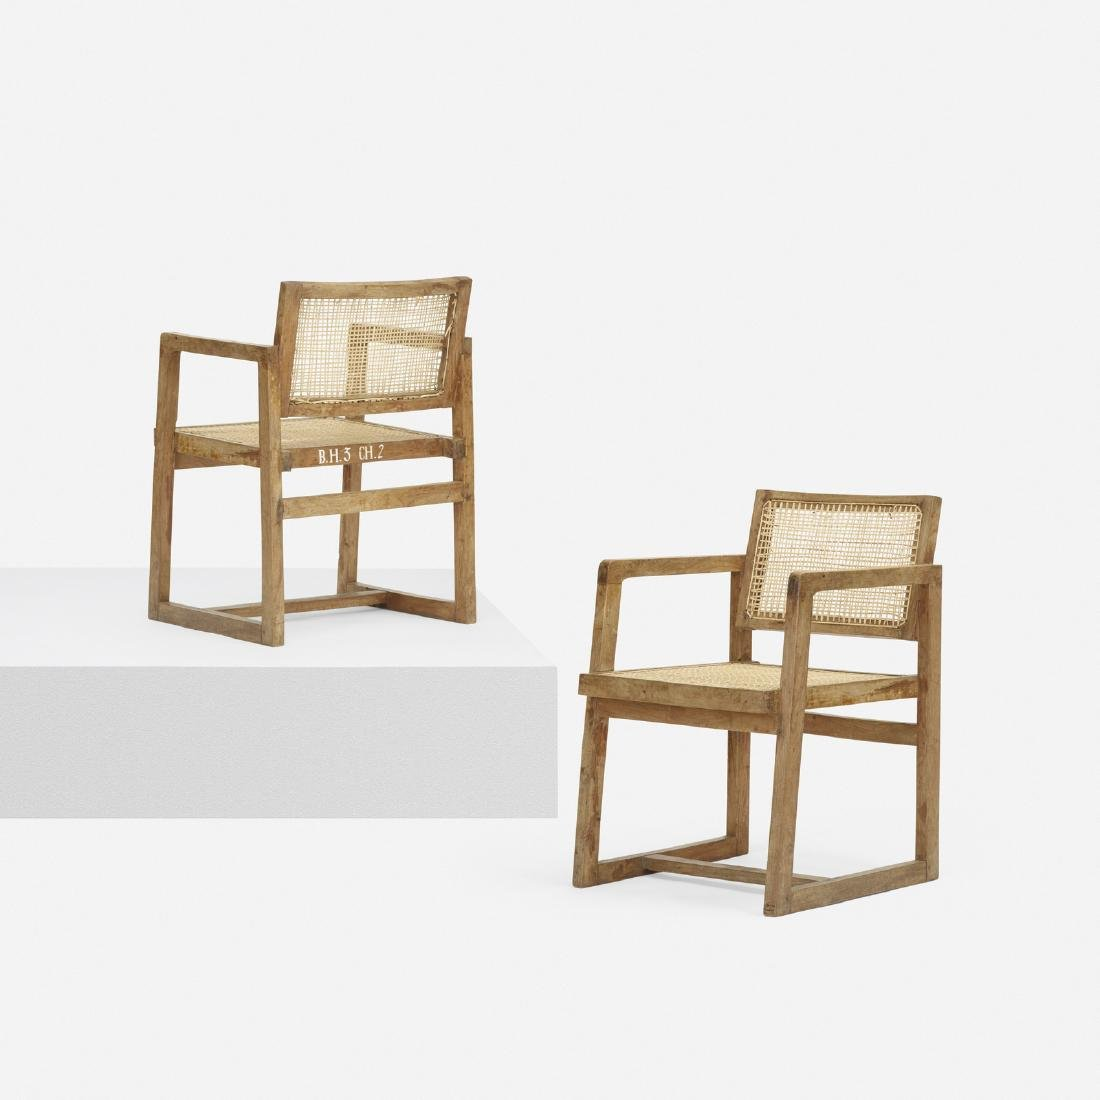 Pierre Jeanneret, armchairs from Chandigarh, pair